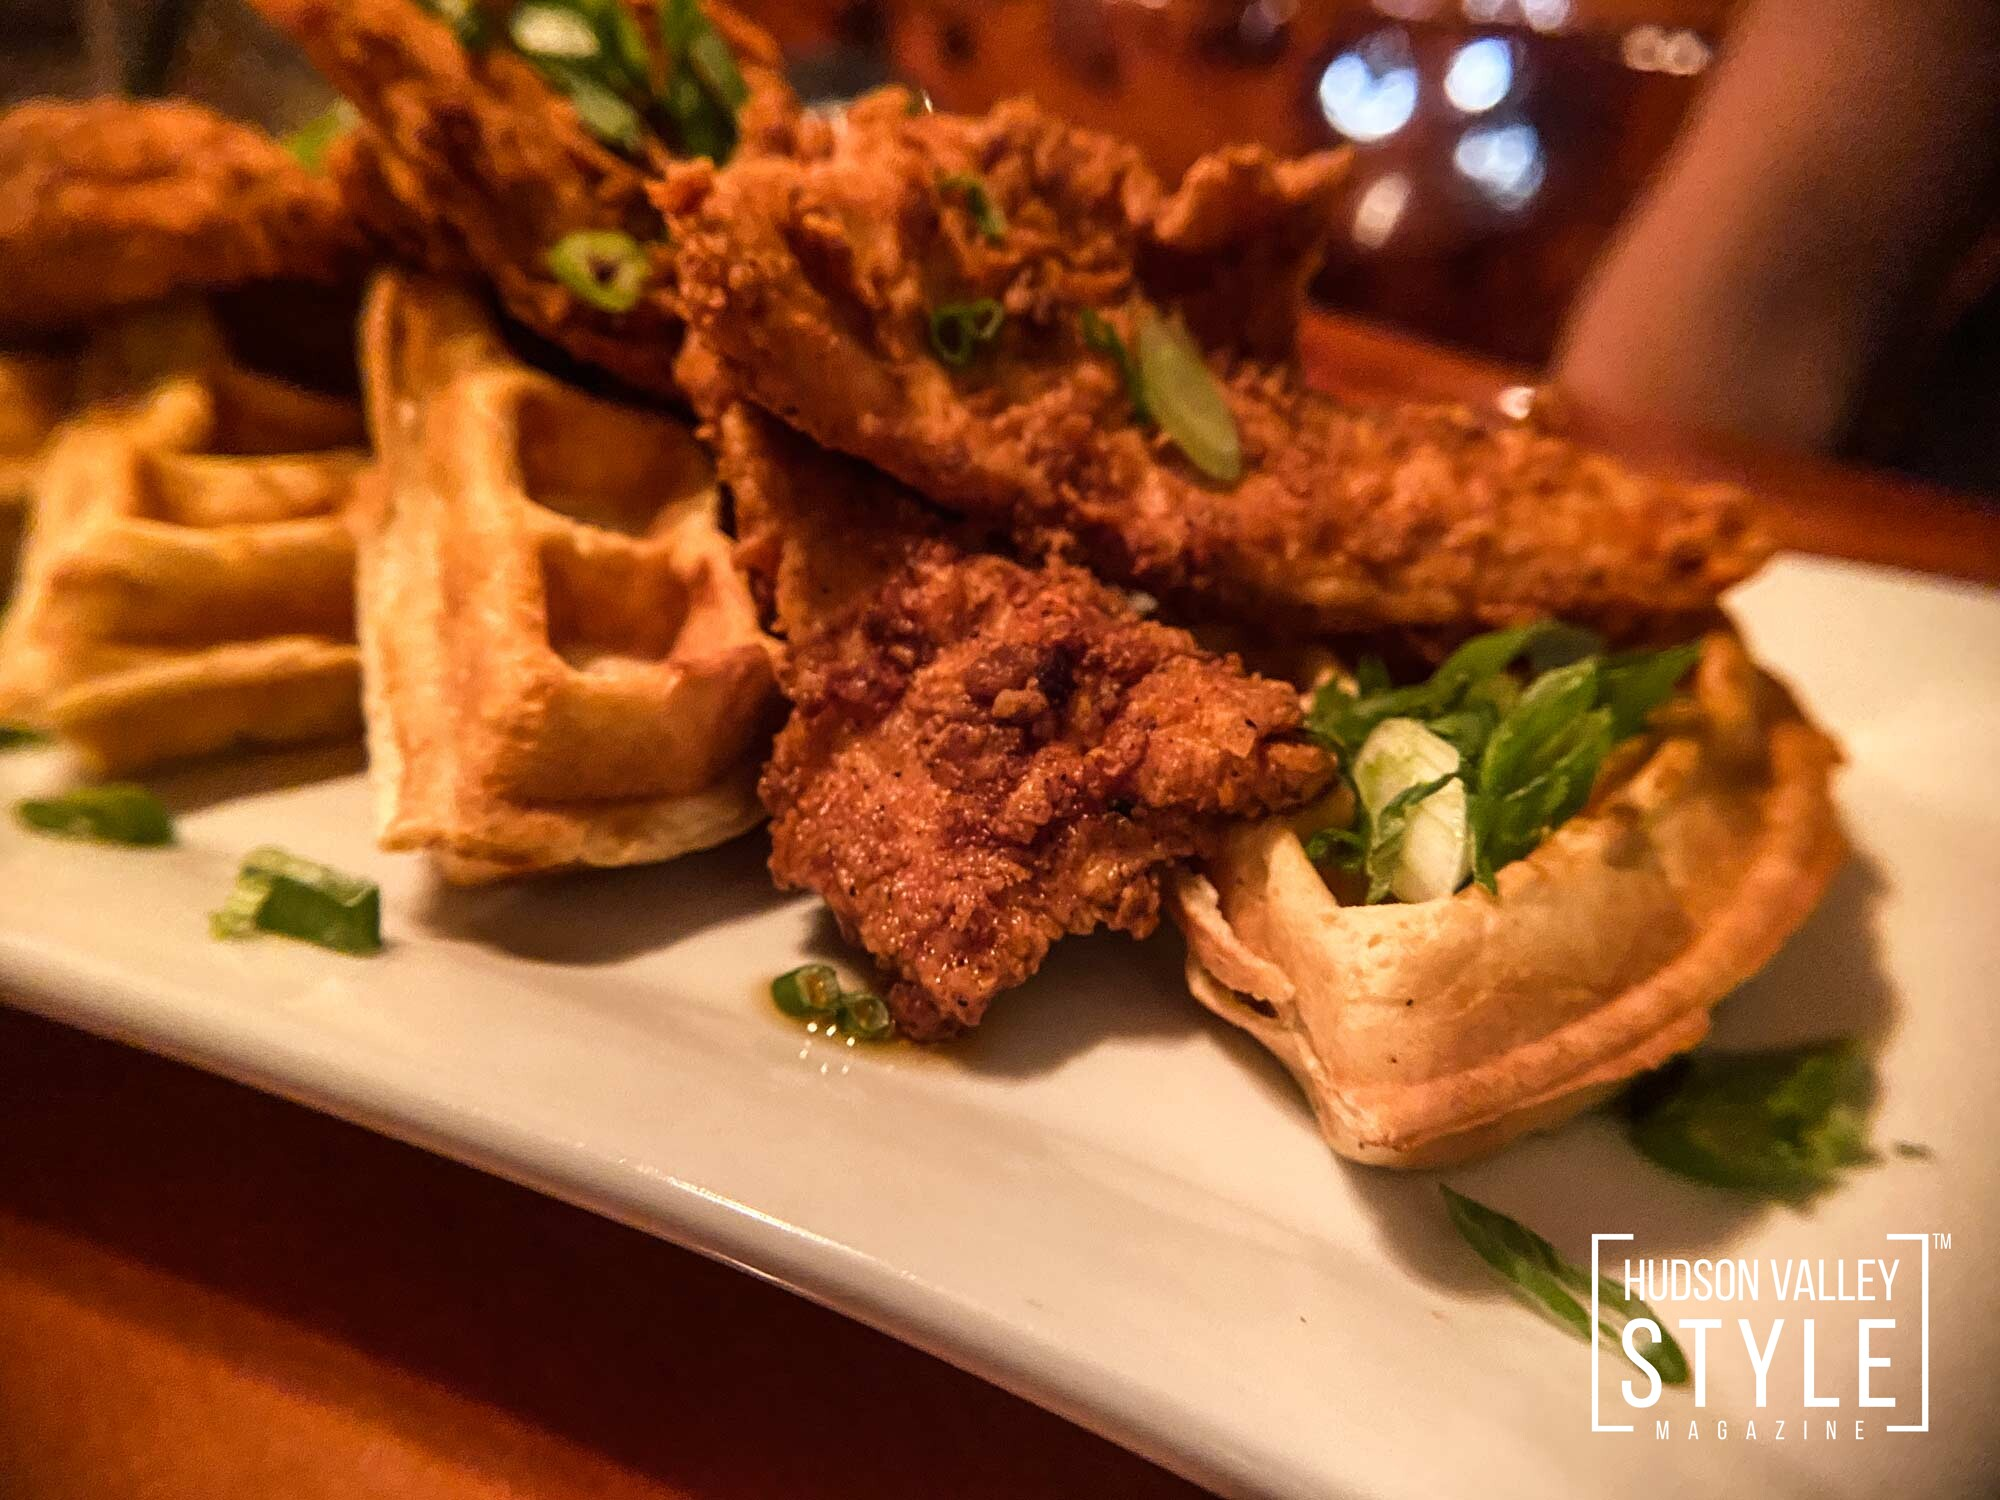 Buttermilk chicken and waffles by 3rd & Co